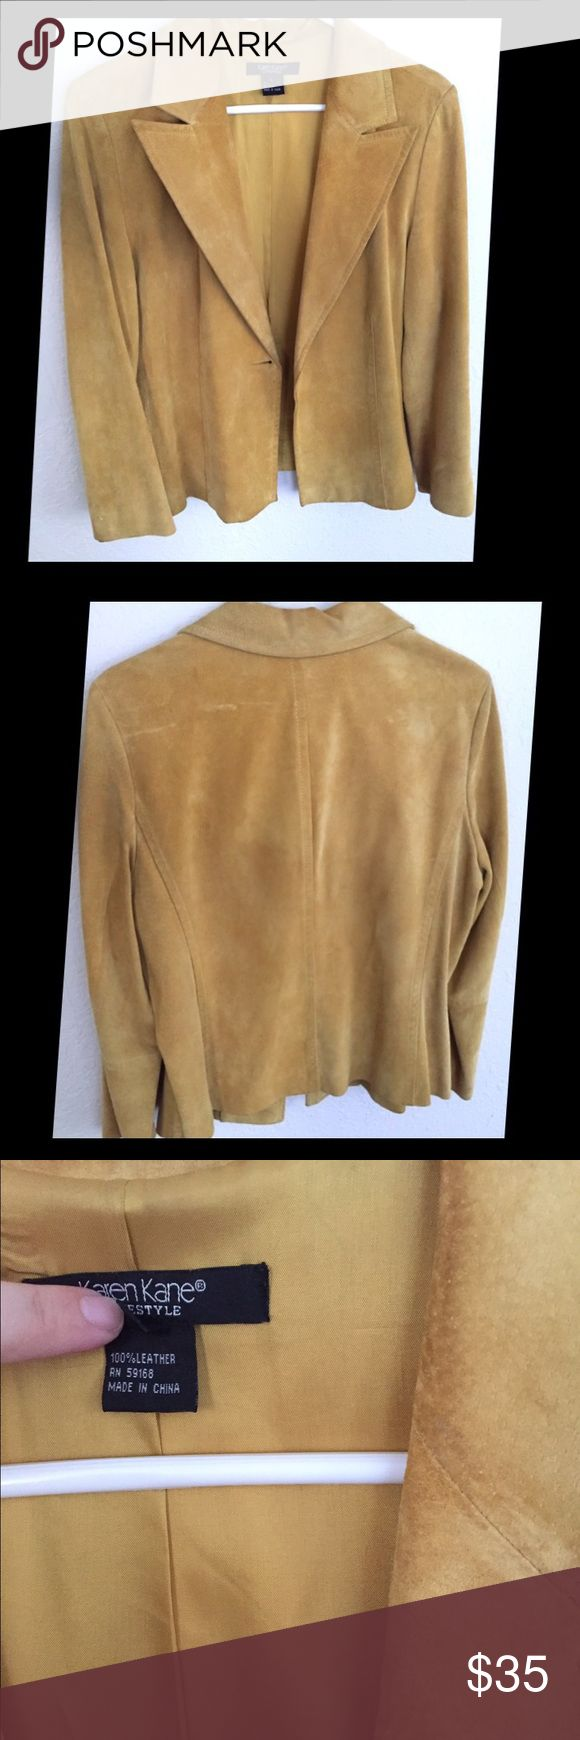 Karen Kane Suede Chartreuse Leather Jacket 100% suede leather jacket in mustard from Karen Kane. Vintage. Missing button, but other than that it's in great condition! Karen Kane Jackets & Coats Blazers